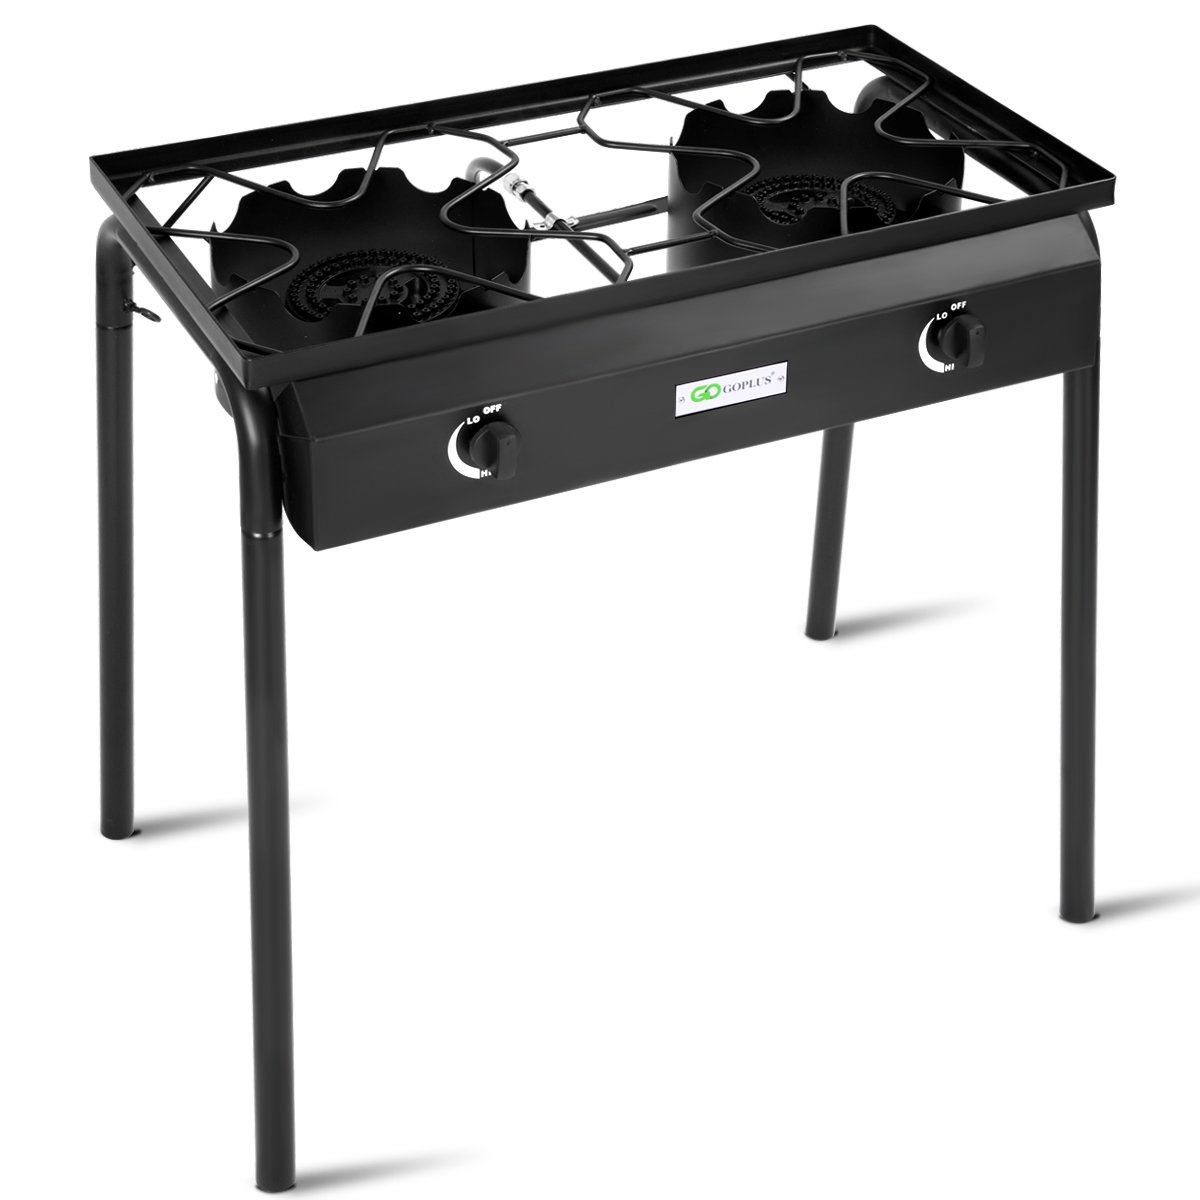 Goplus Outdoor Camp Stove Propane Gas Cooker Portable Cast Iron Patio Cooking Burner w/Detachable Legs (2-Burner 150,000-BTU)